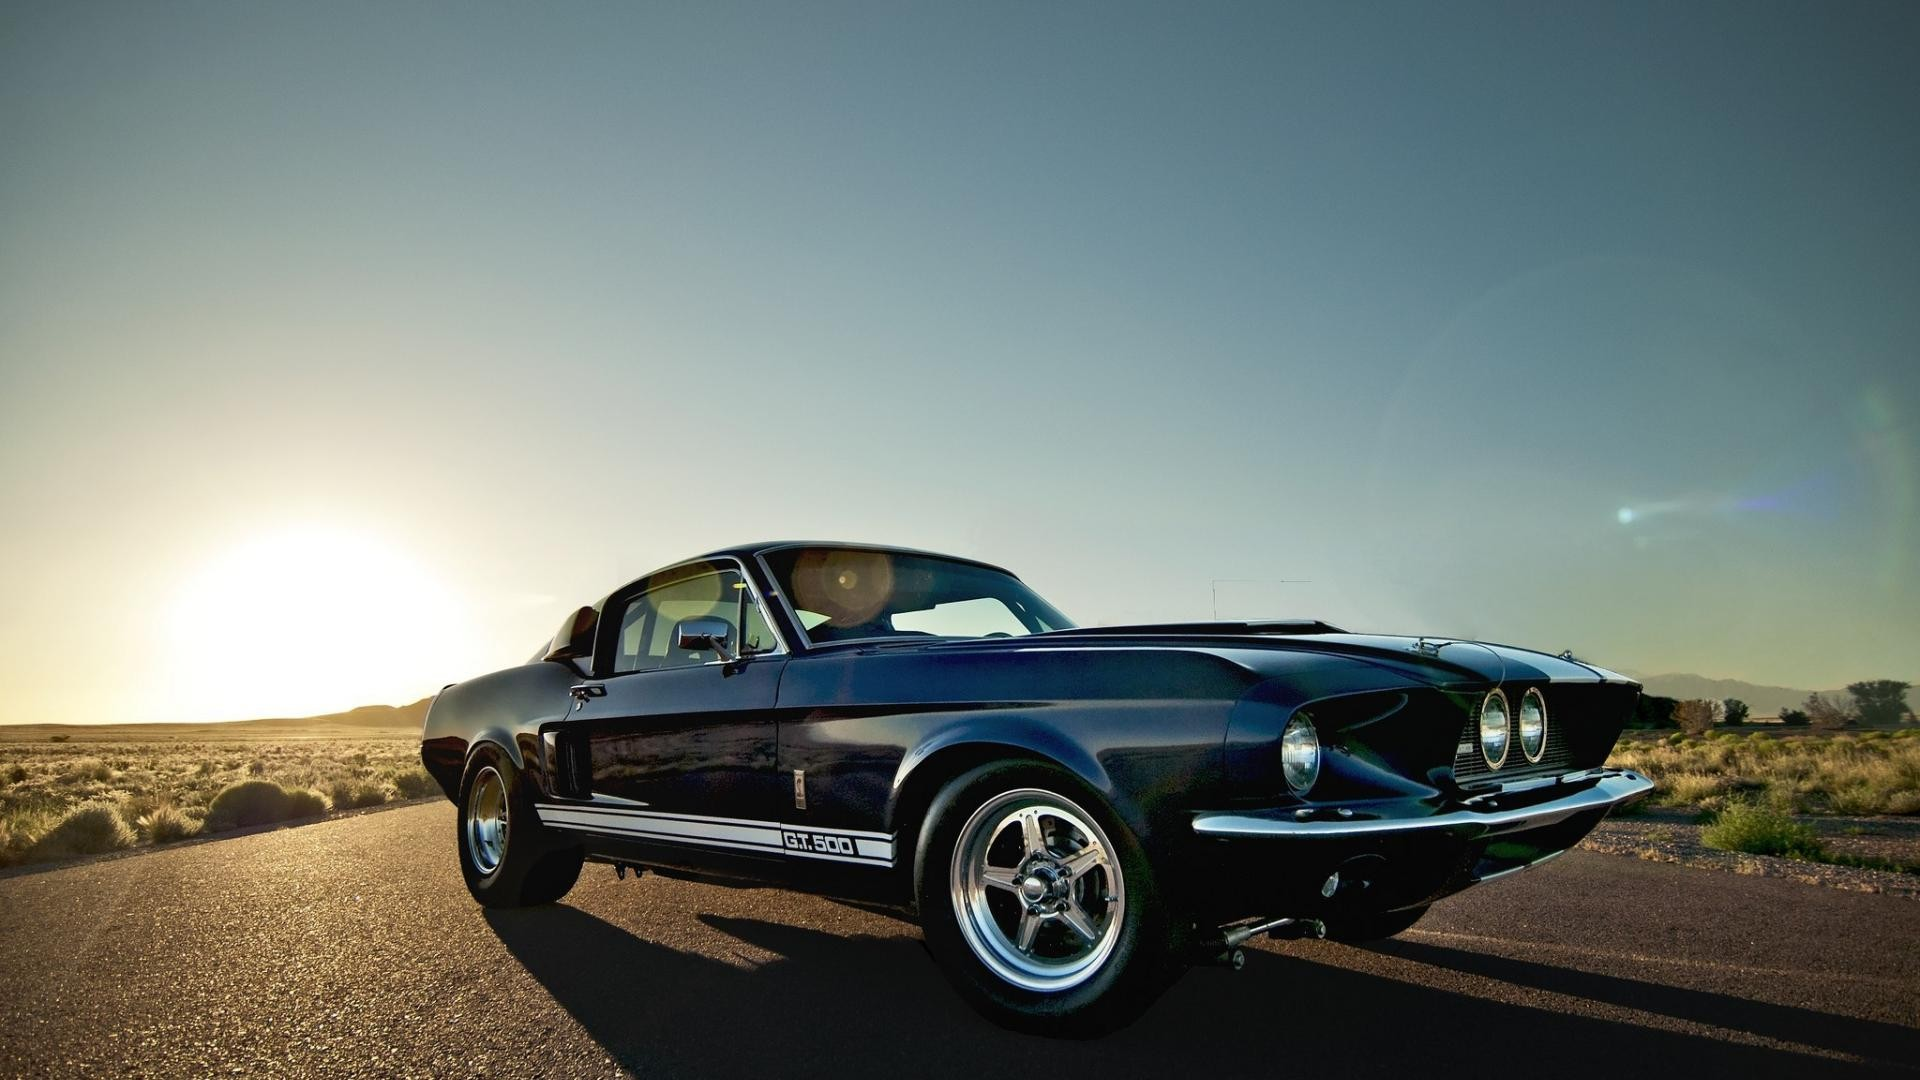 Old Mustang Wallpaper Pictures Hd Wallpapers Aduphoto 1920x1080px